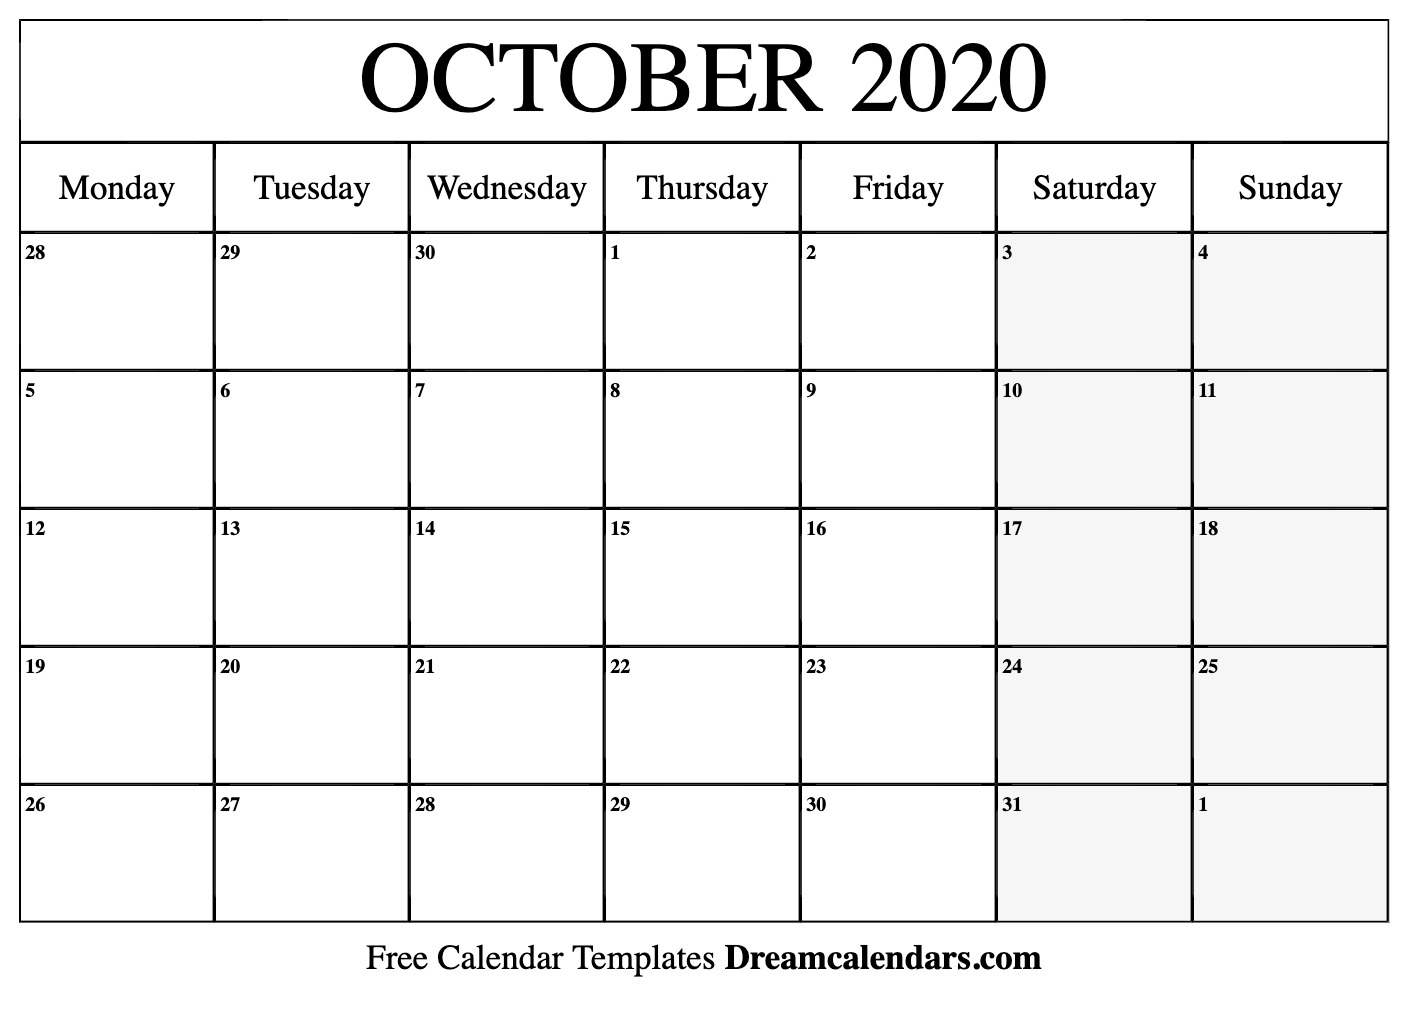 Calendar October 2020 Ko fi   Printable October 2020 Calendar   Ko fi ❤️ Where